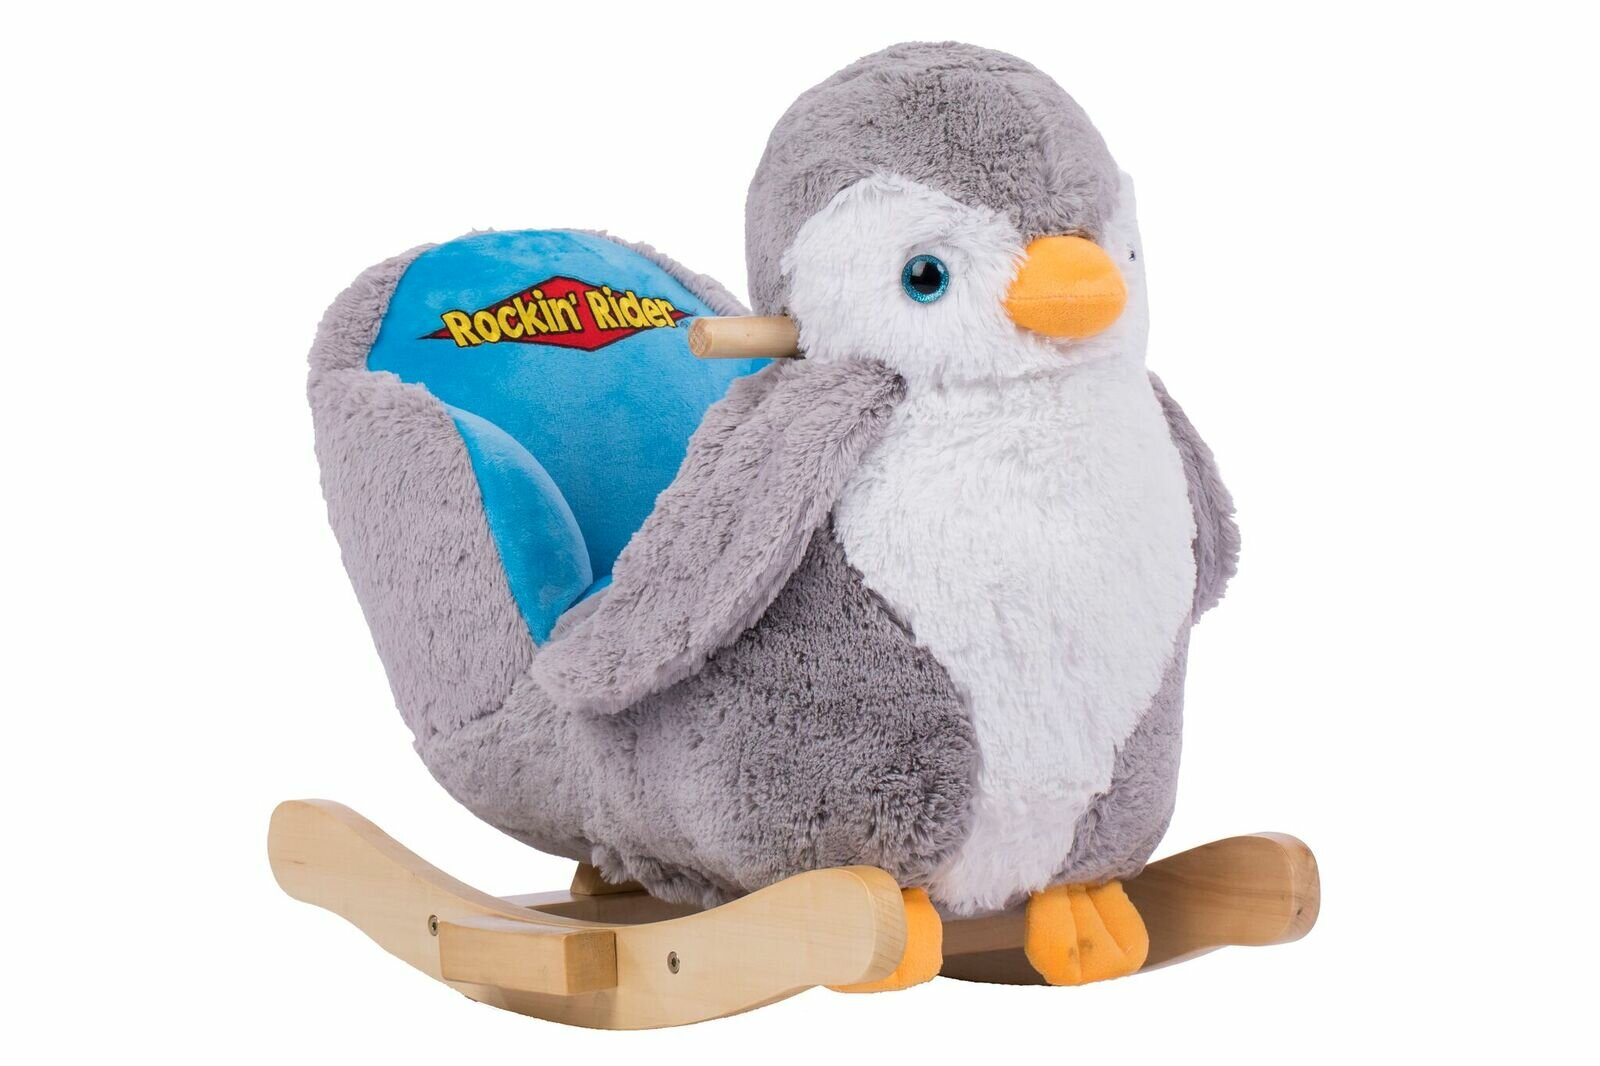 bc7ce345d34 Rockin  Rider Percy the Penguin Baby Rocker